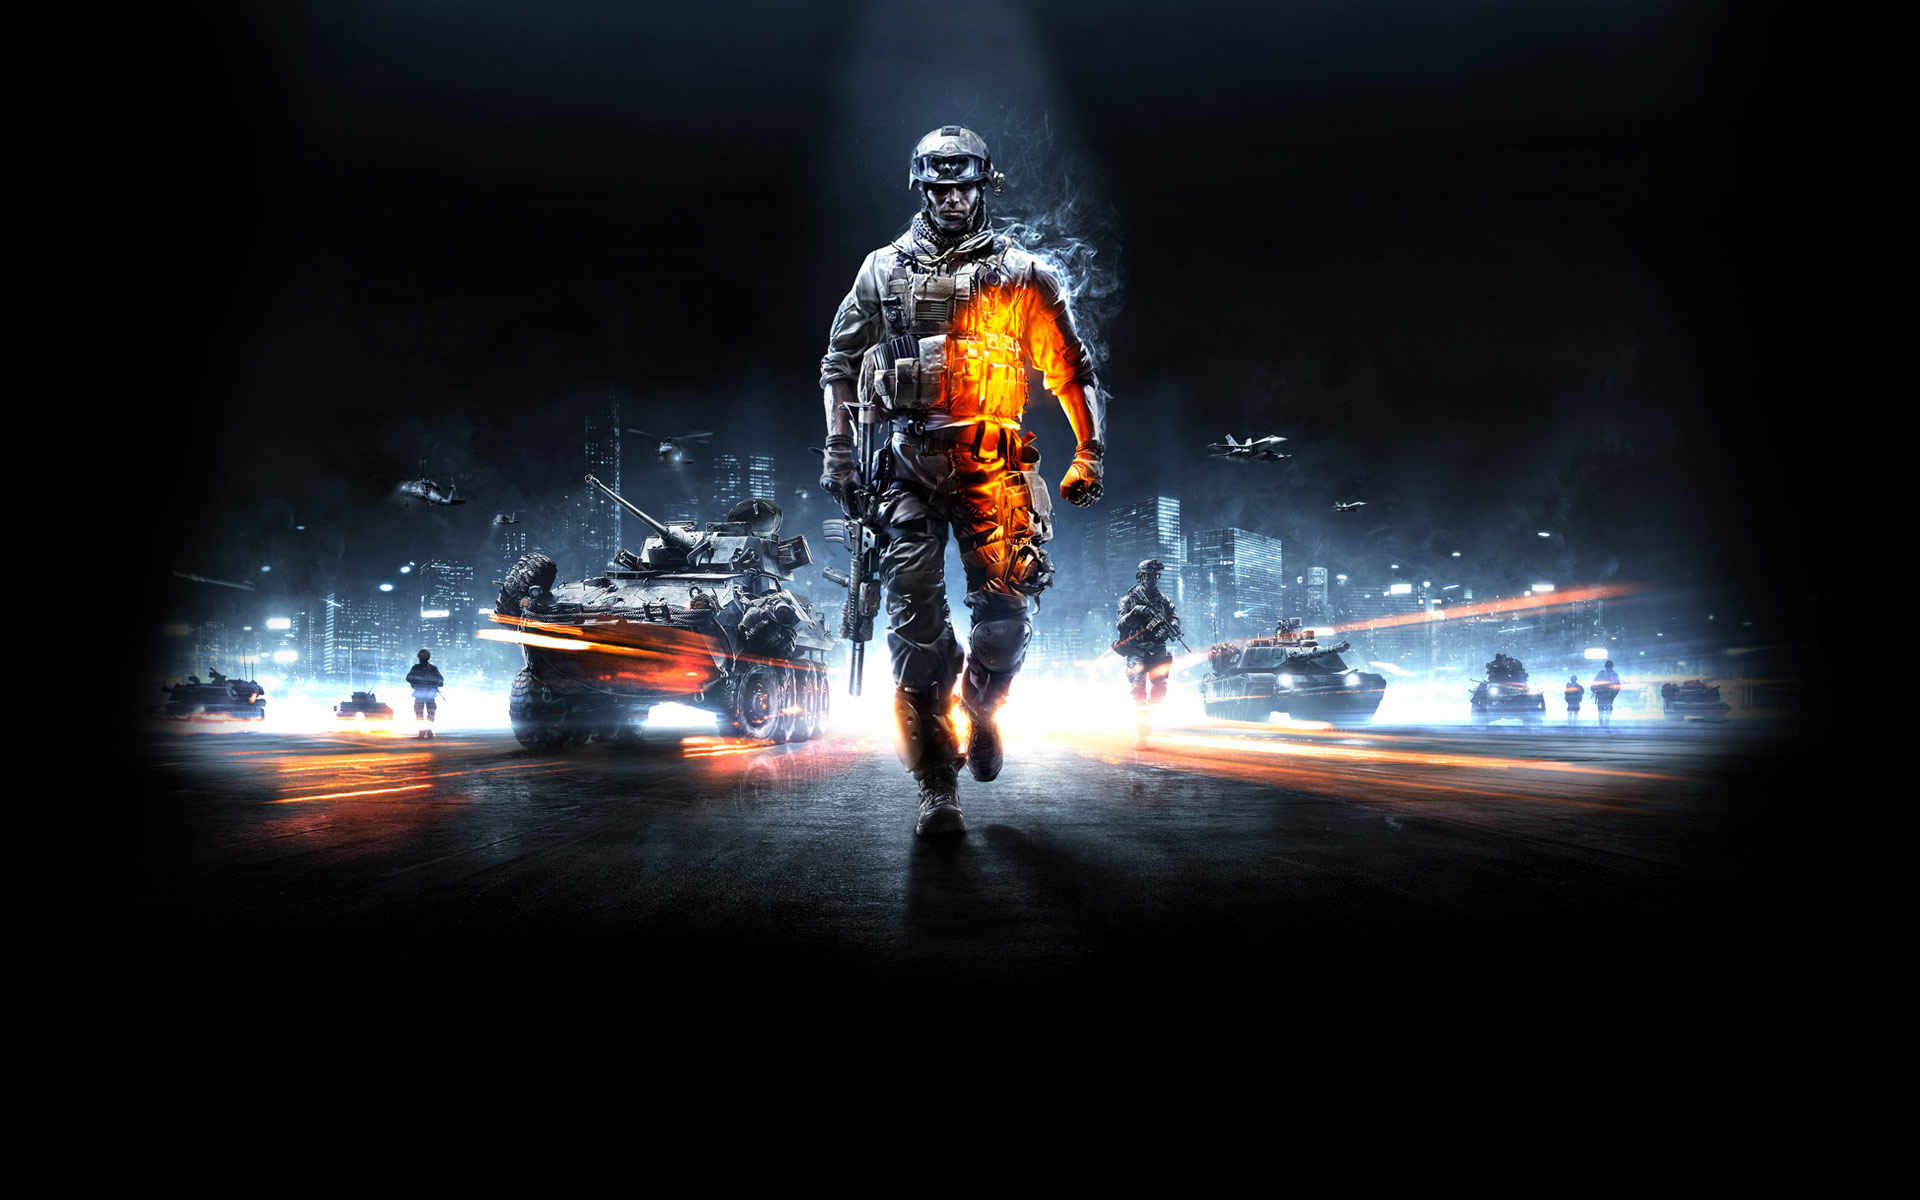 New Battlefield 3 HD Wallpaper   Windows 7 Theme